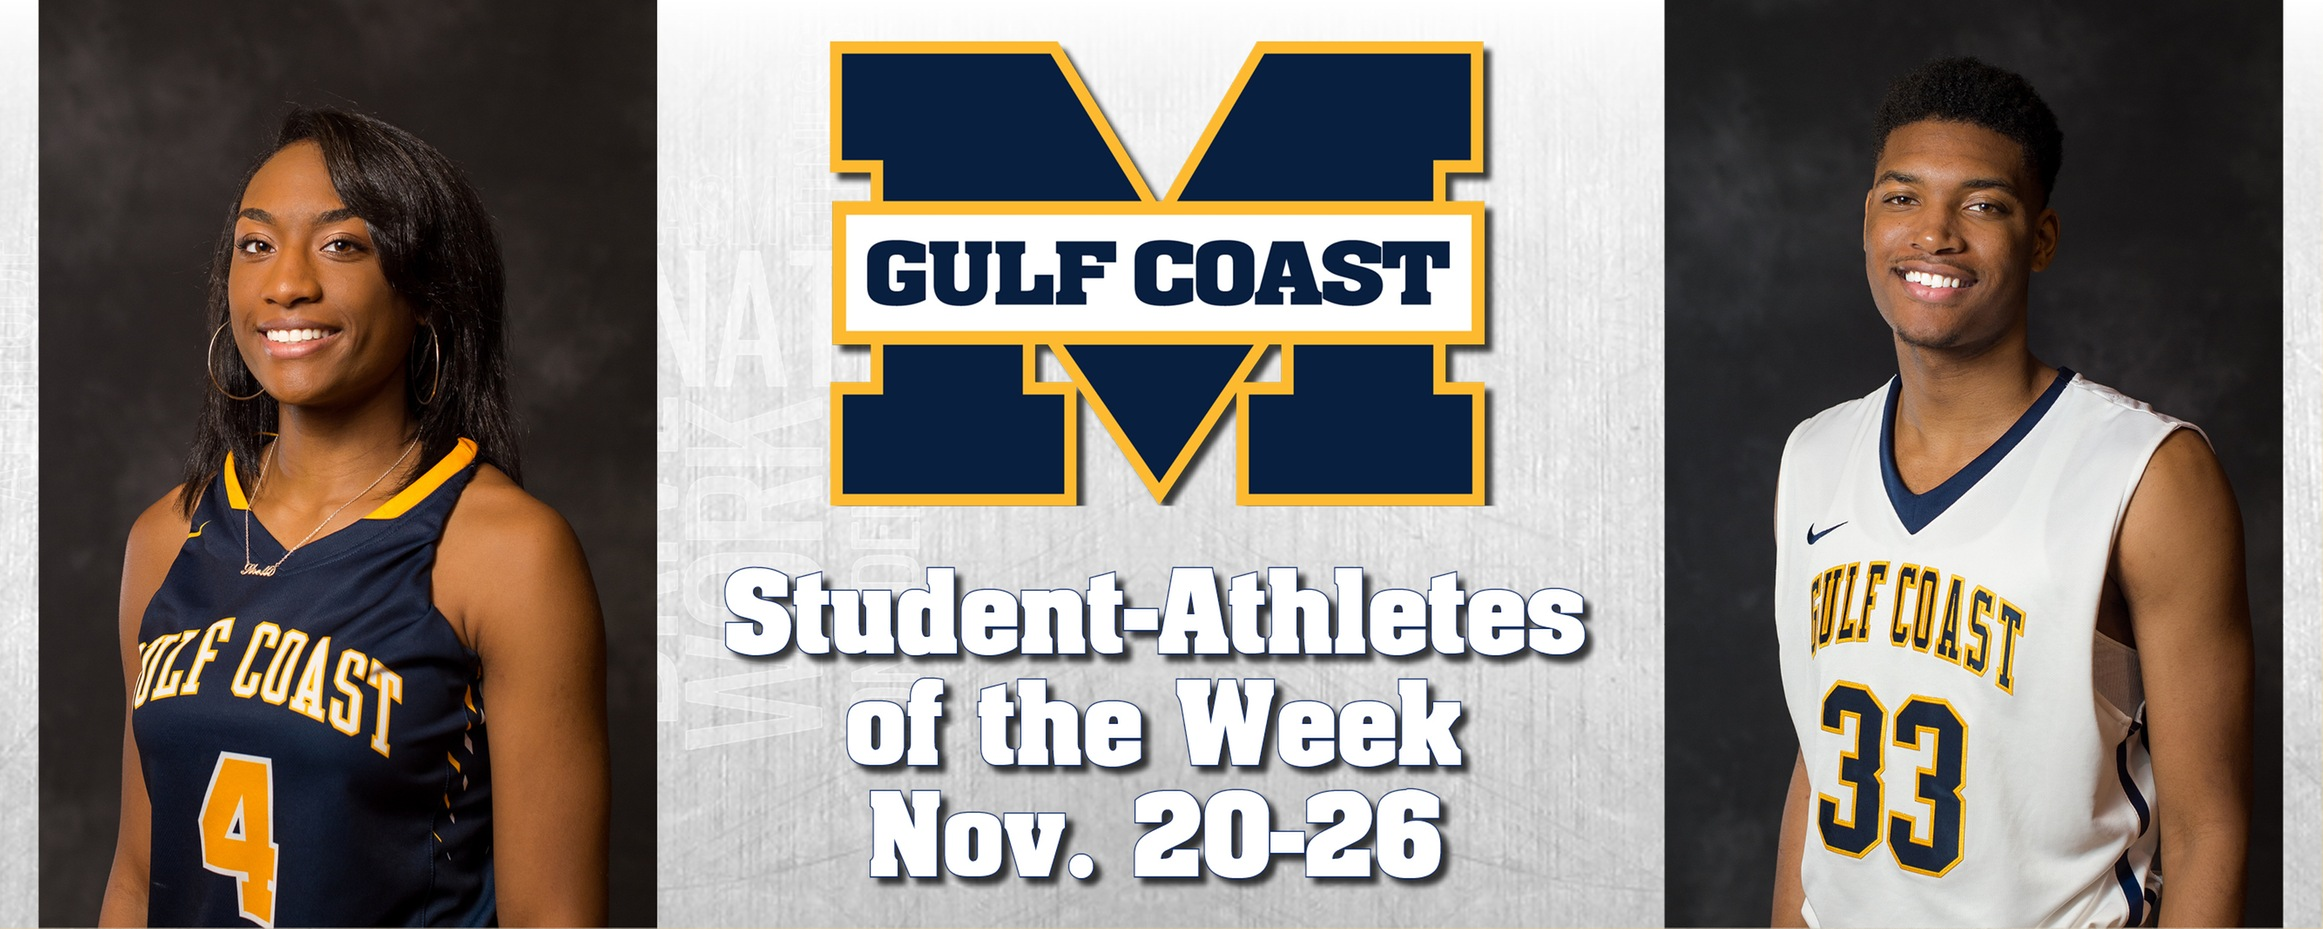 Thigpen, Green named MGCCC Student-Athletes of the Week